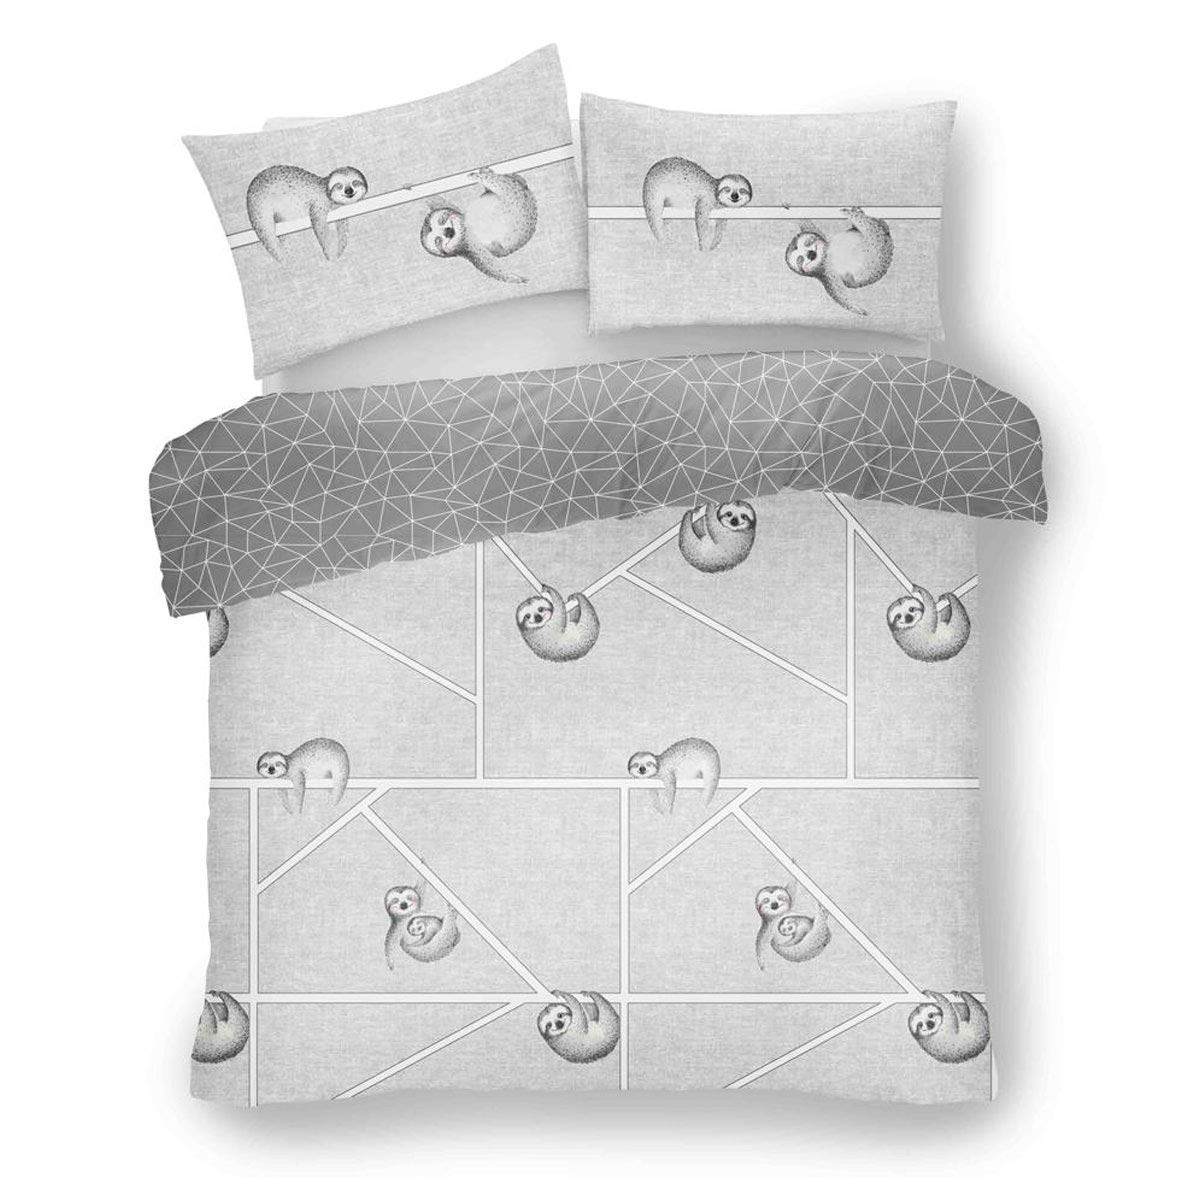 Rapport Simply Sloth King Duvet Set CHEAPEST ON